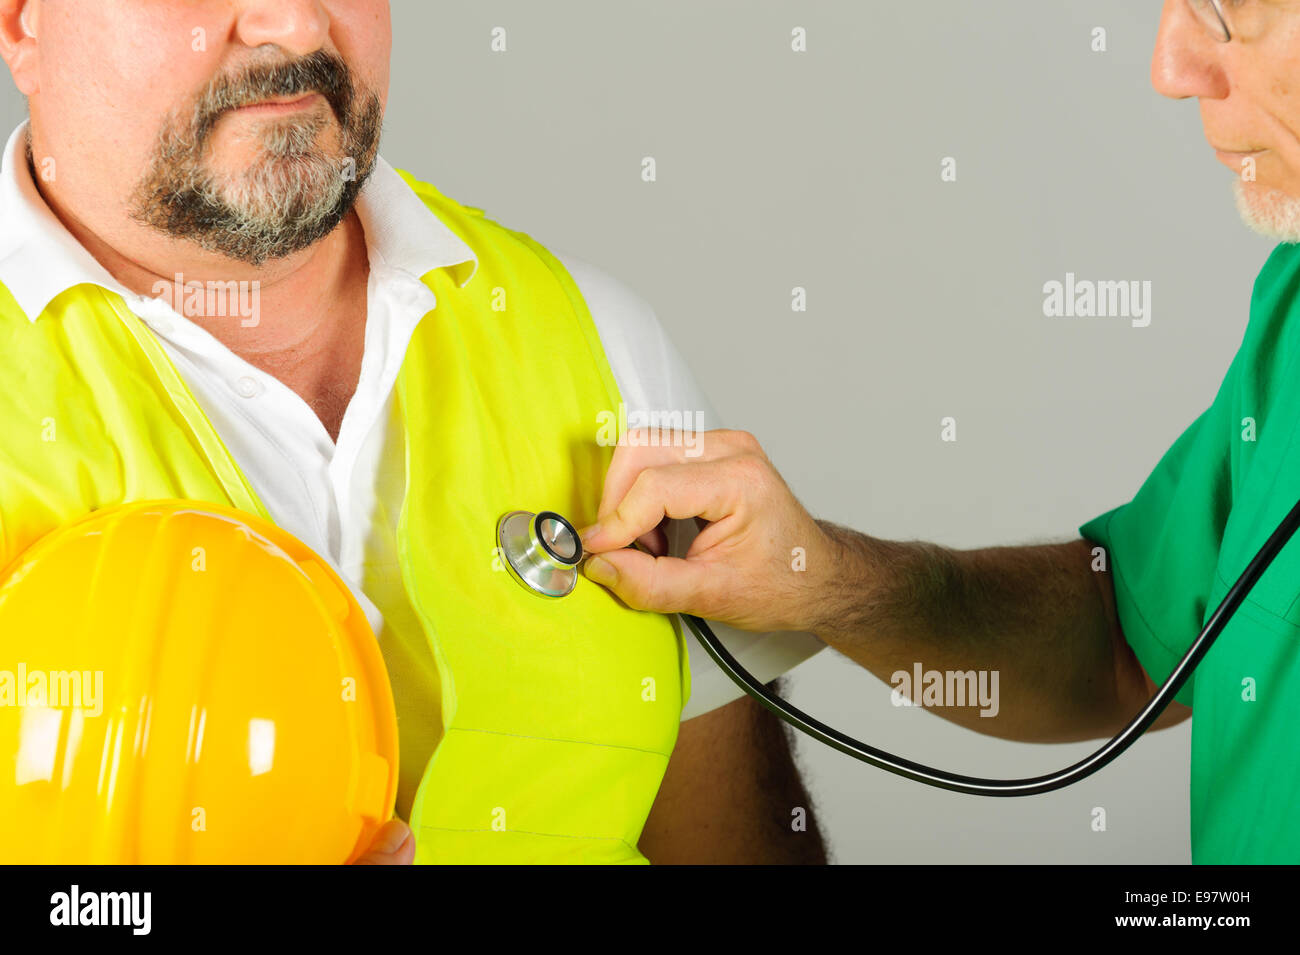 hard hat labor at medical doctor examination isolated background - Stock Image